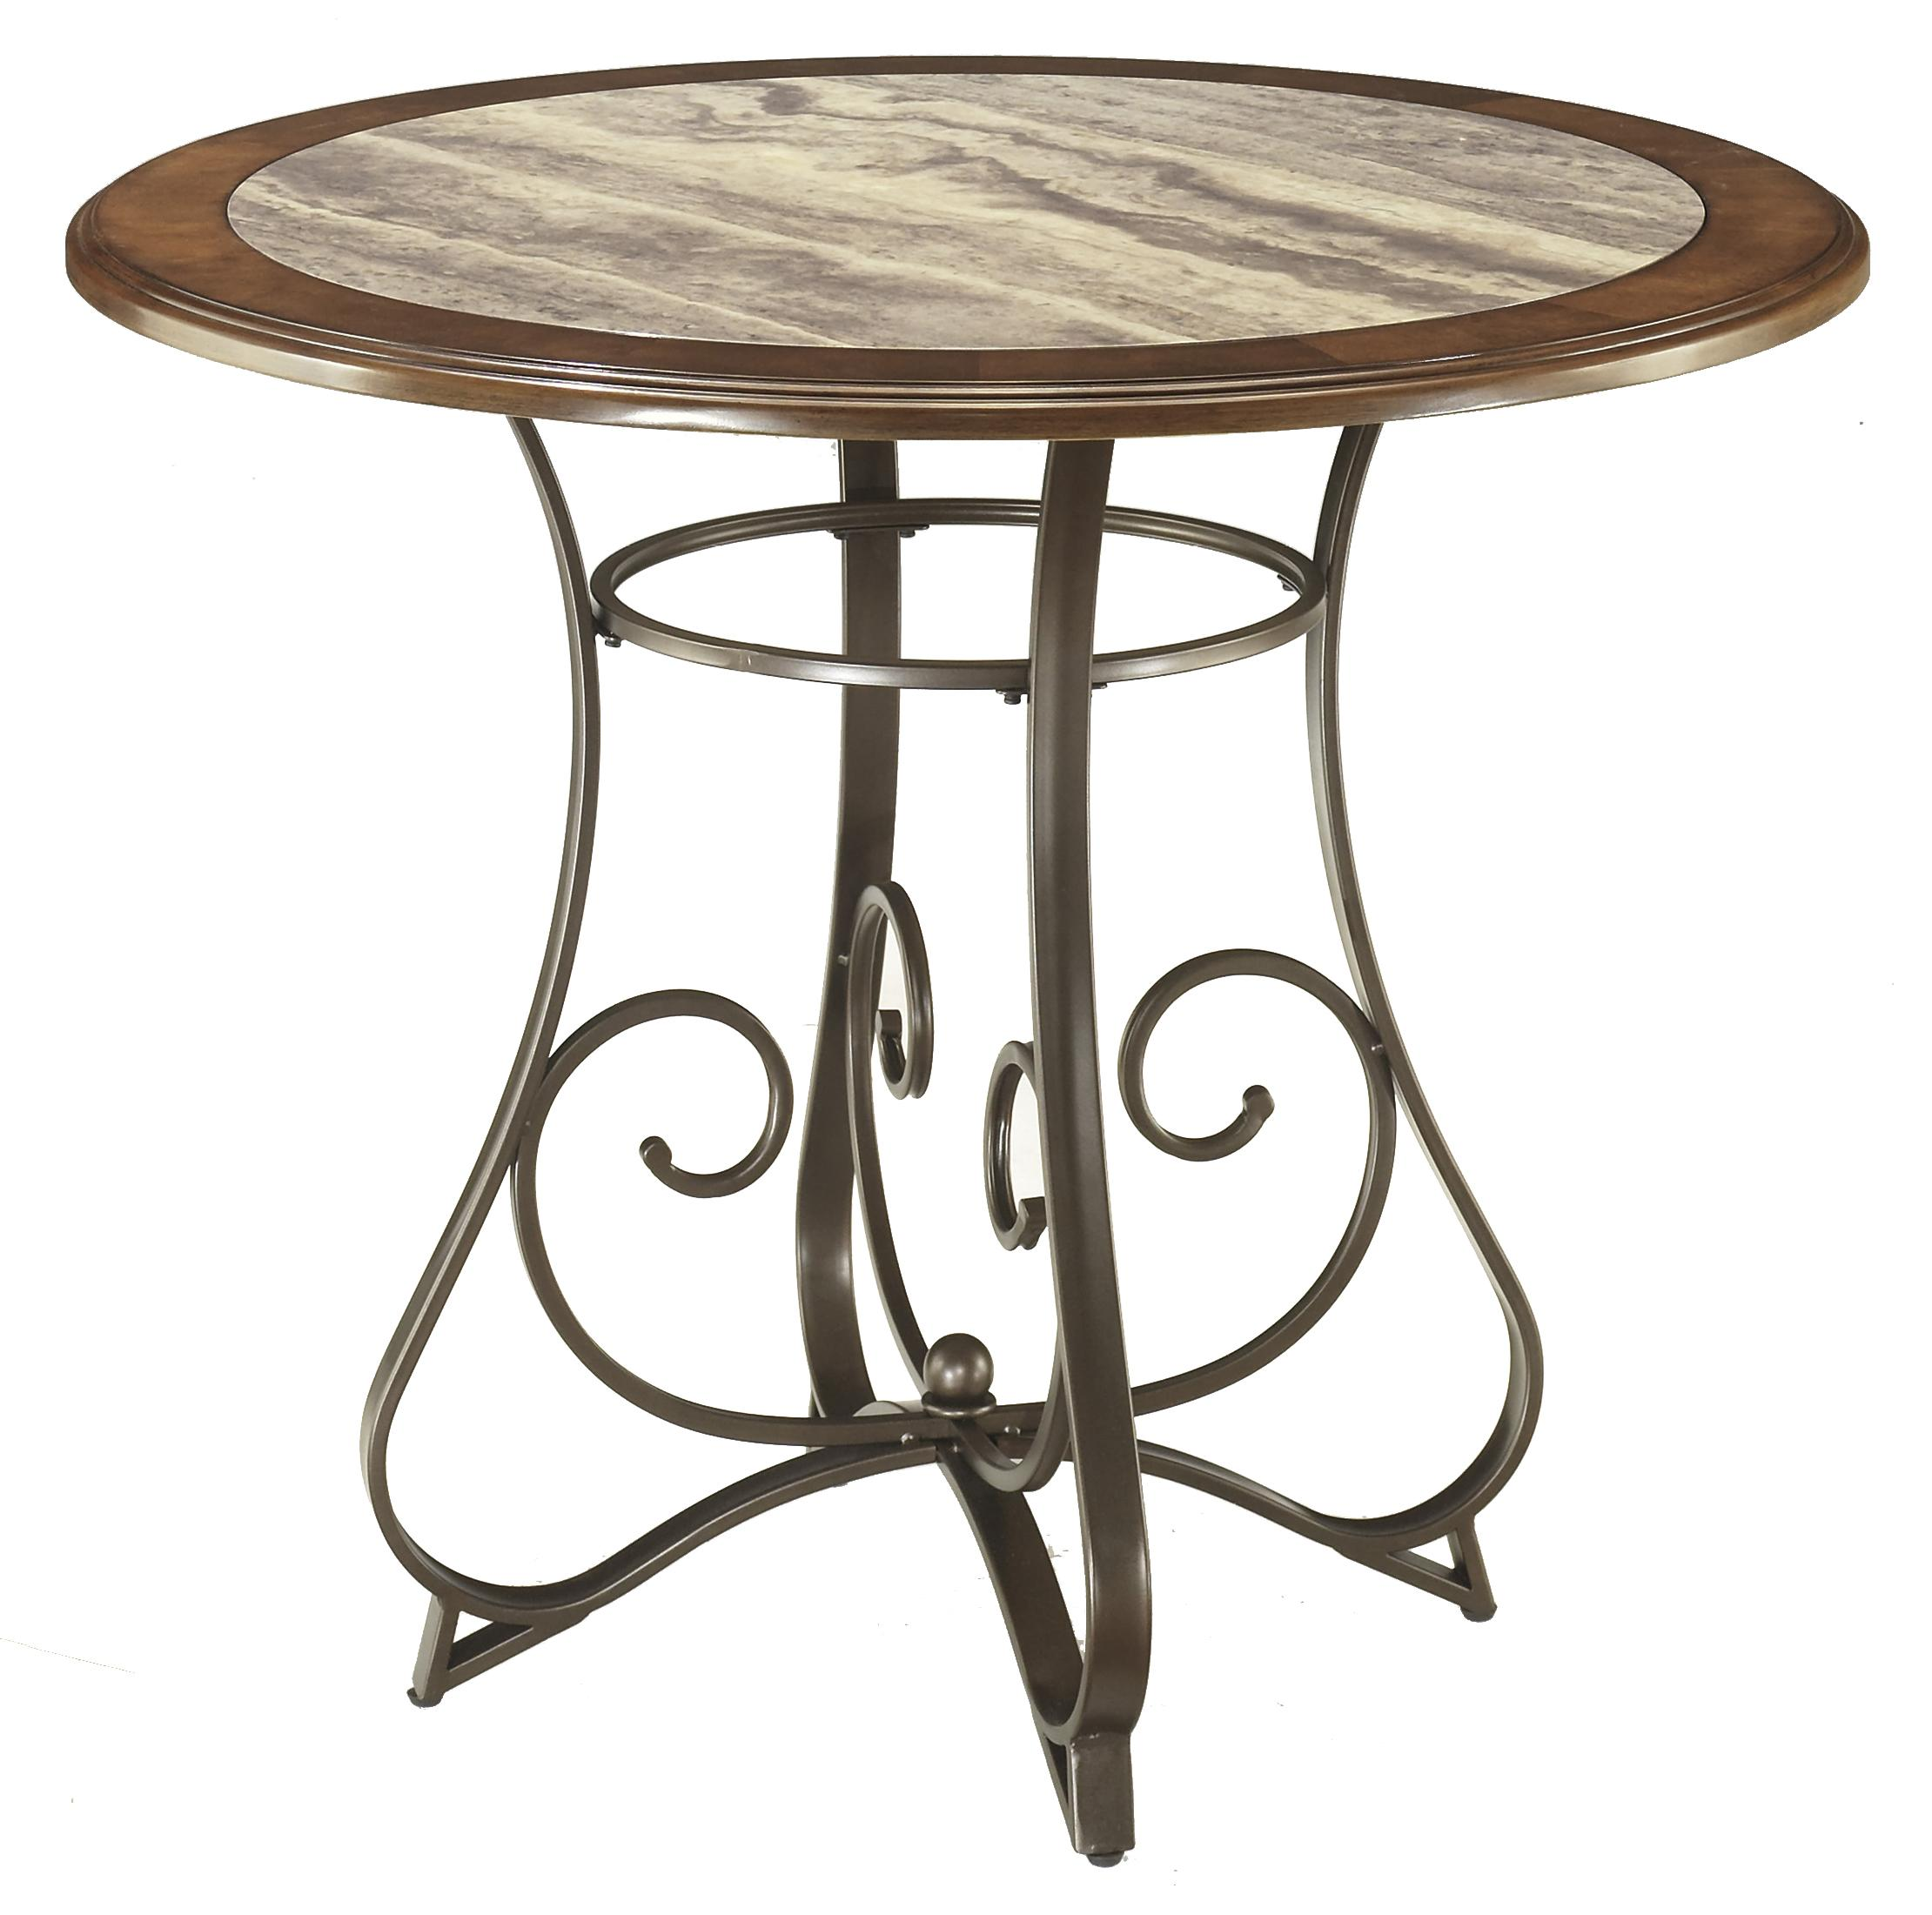 Signature Design by Ashley Tilley Round Counter Table - Item Number: D314-13B+T